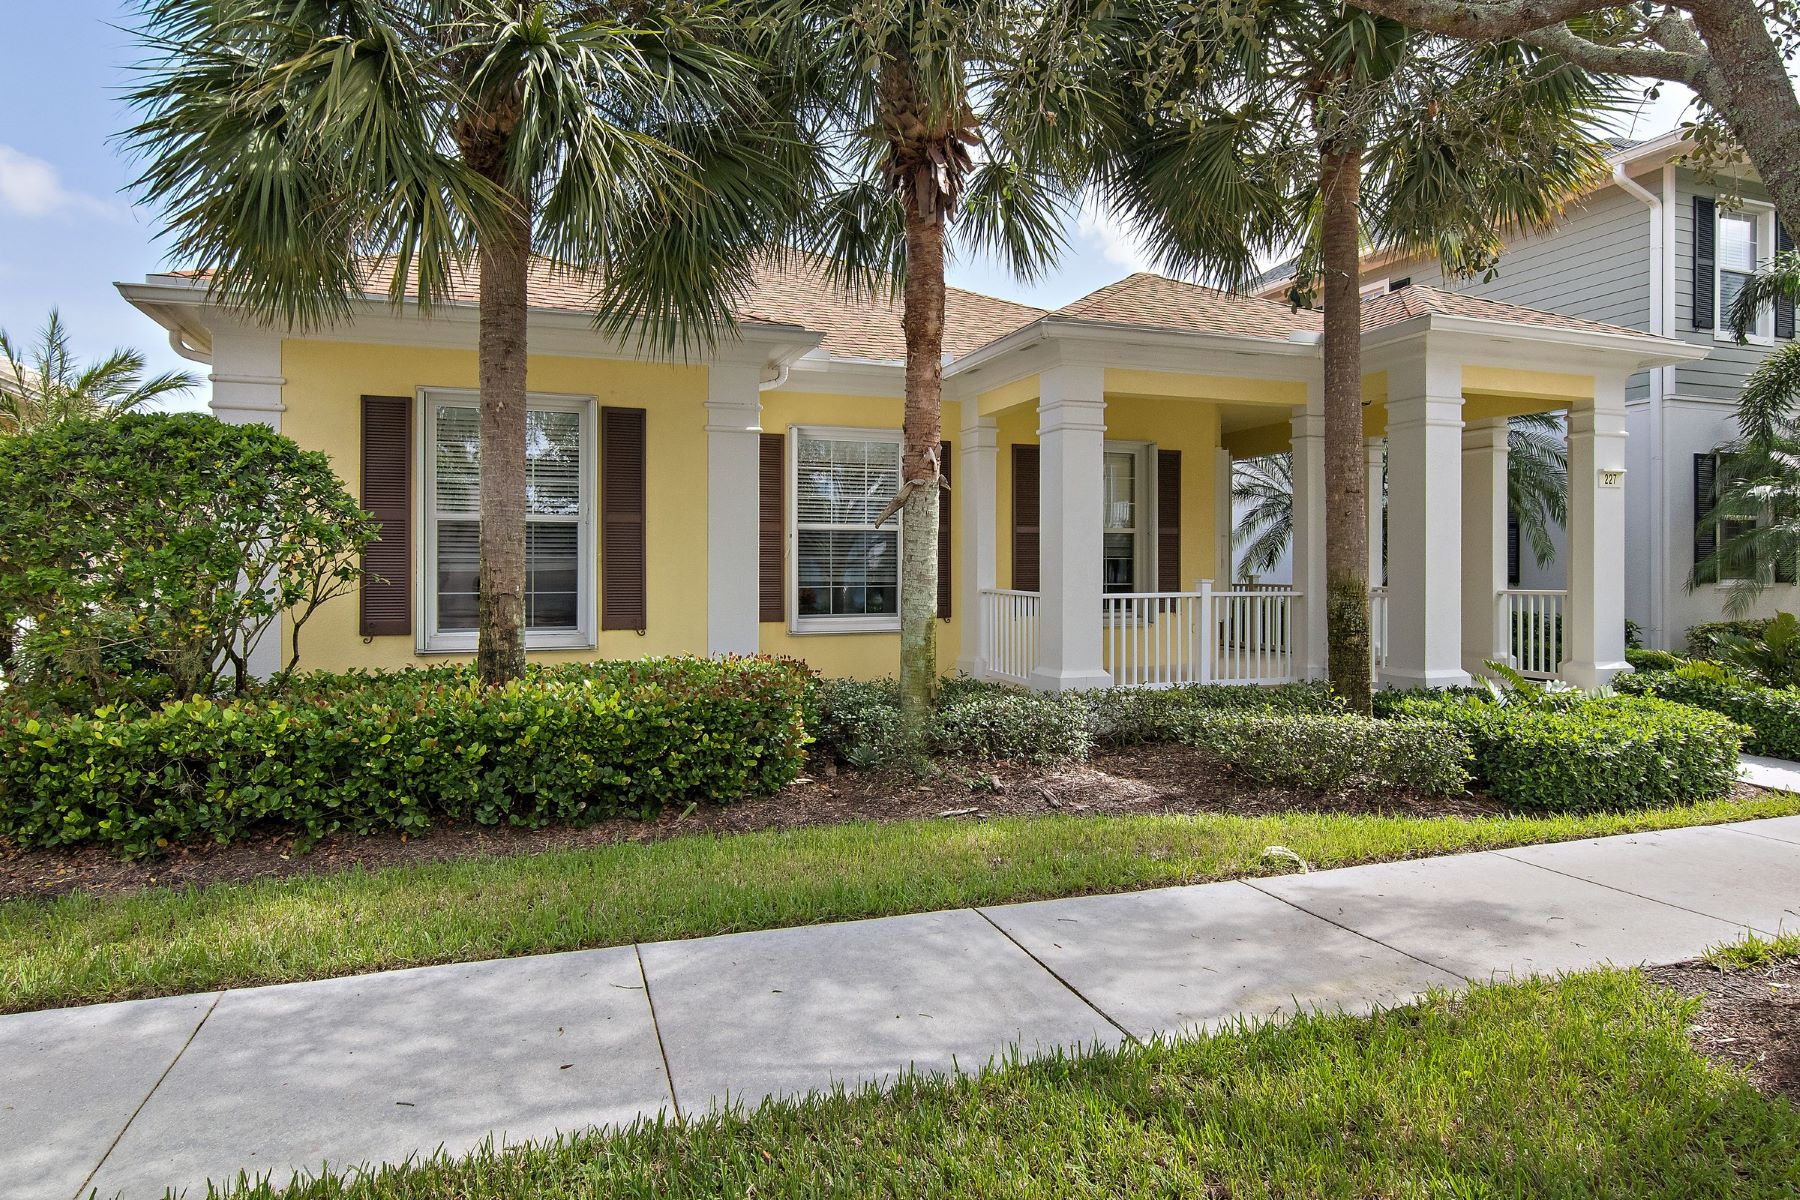 Single Family Home for Sale at 227 Caravelle Drive 227 Caravelle Drive Jupiter, Florida 33458 United States